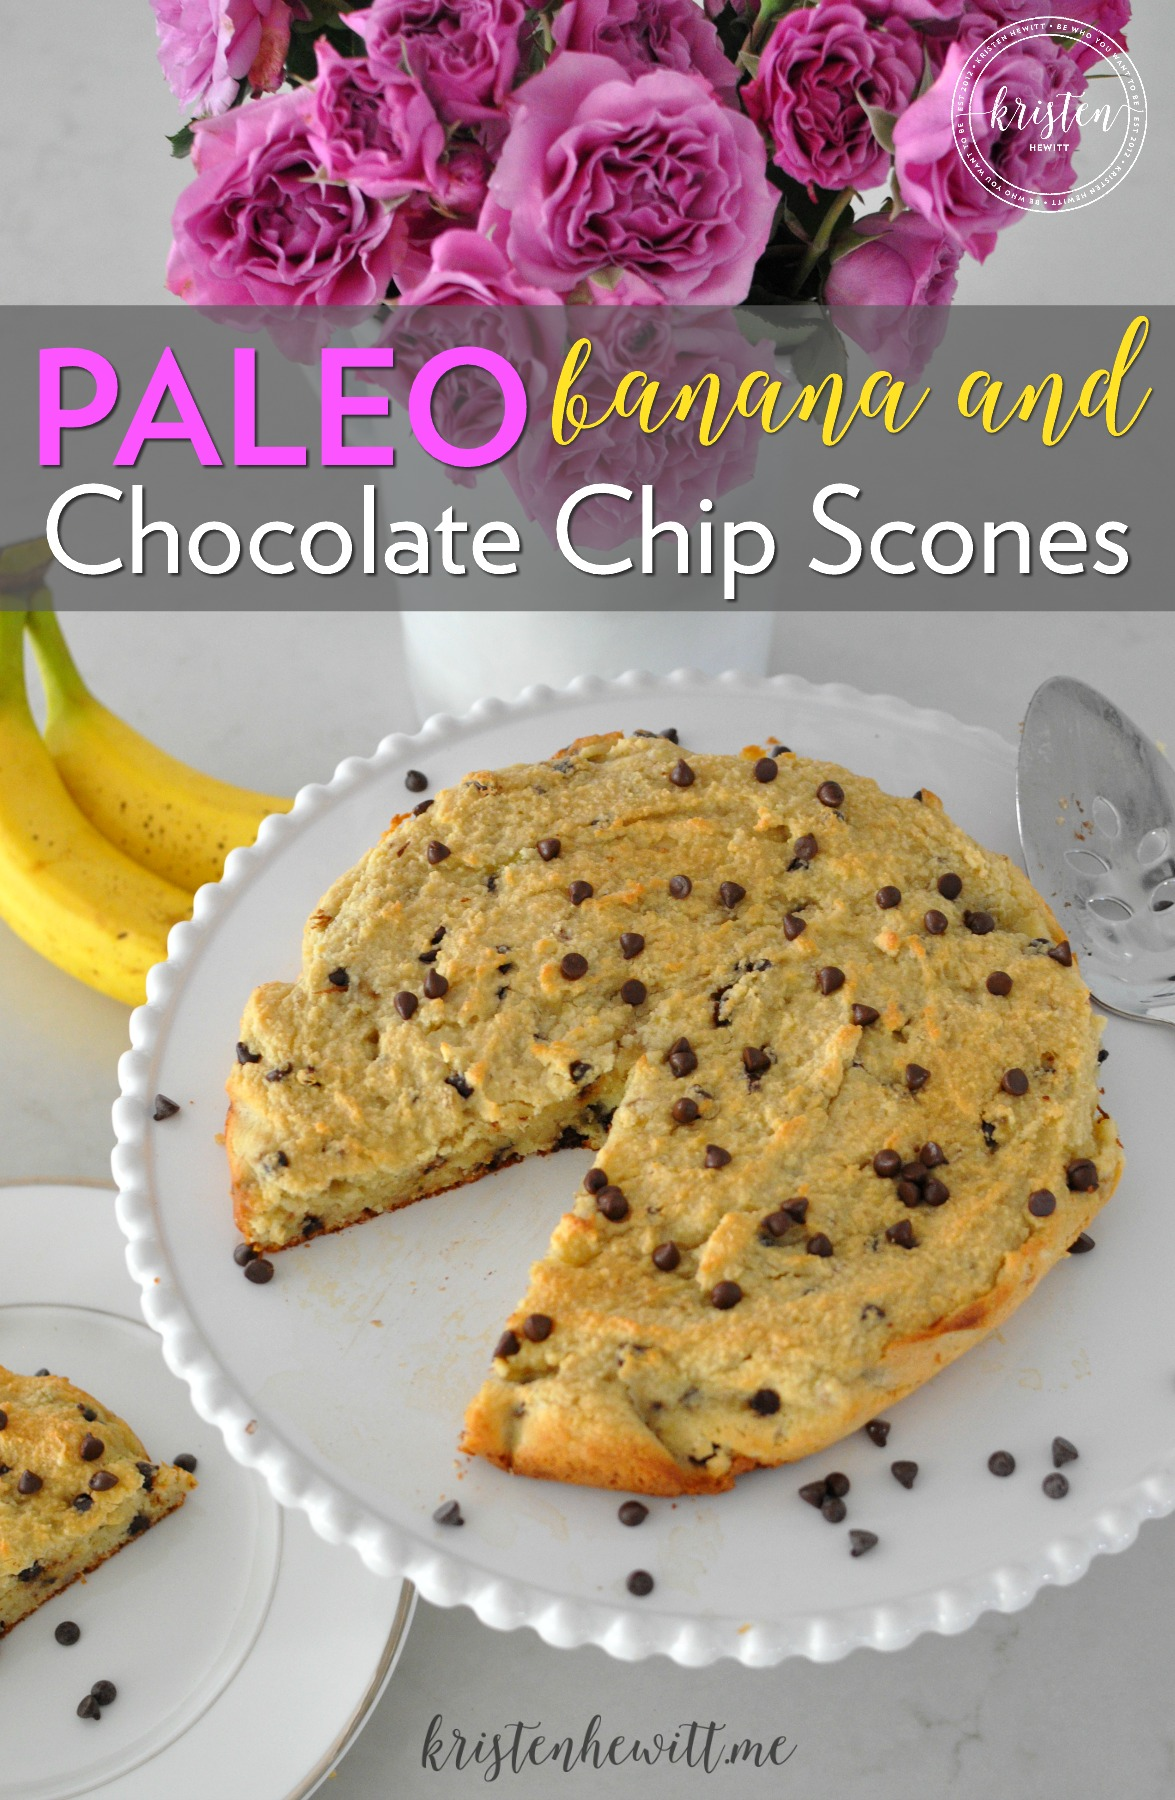 Looking for a new paleo scones recipe? Try these paleo banana chocolate chip scones. They are so easy to make and a delicious treat for breakfast!